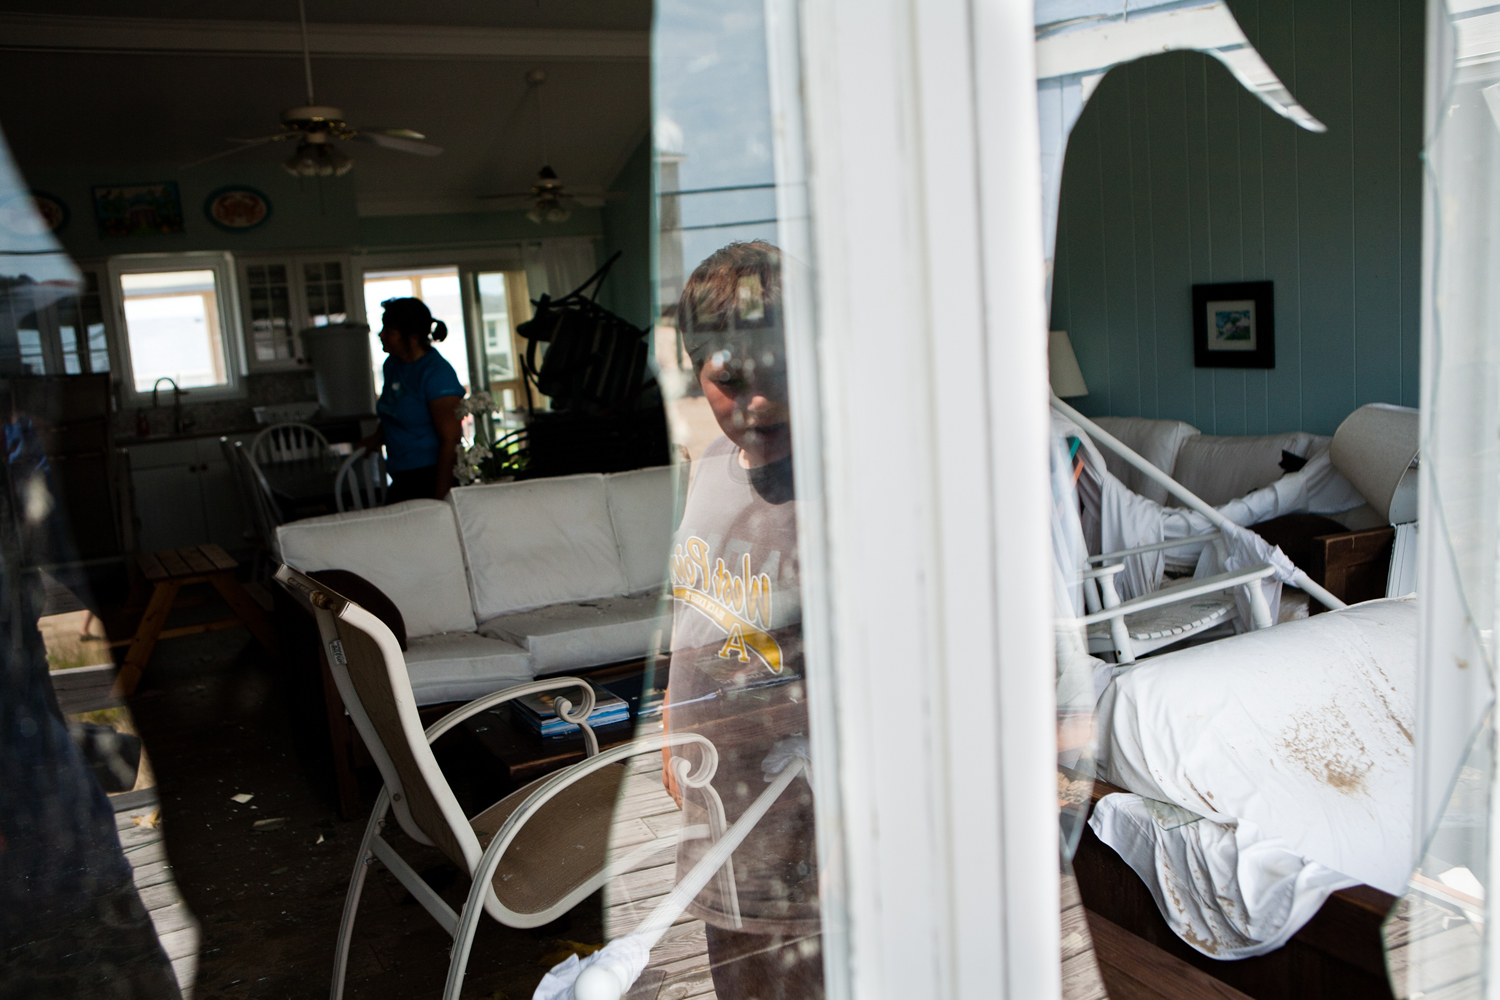 August 28, 2011, Virginia Beach, VA. Michael Black, 10, is reflected in a broken window of his family's vacation house in Sandbridge the day after a tornado spawned by Hurricane Irene passed through the town.